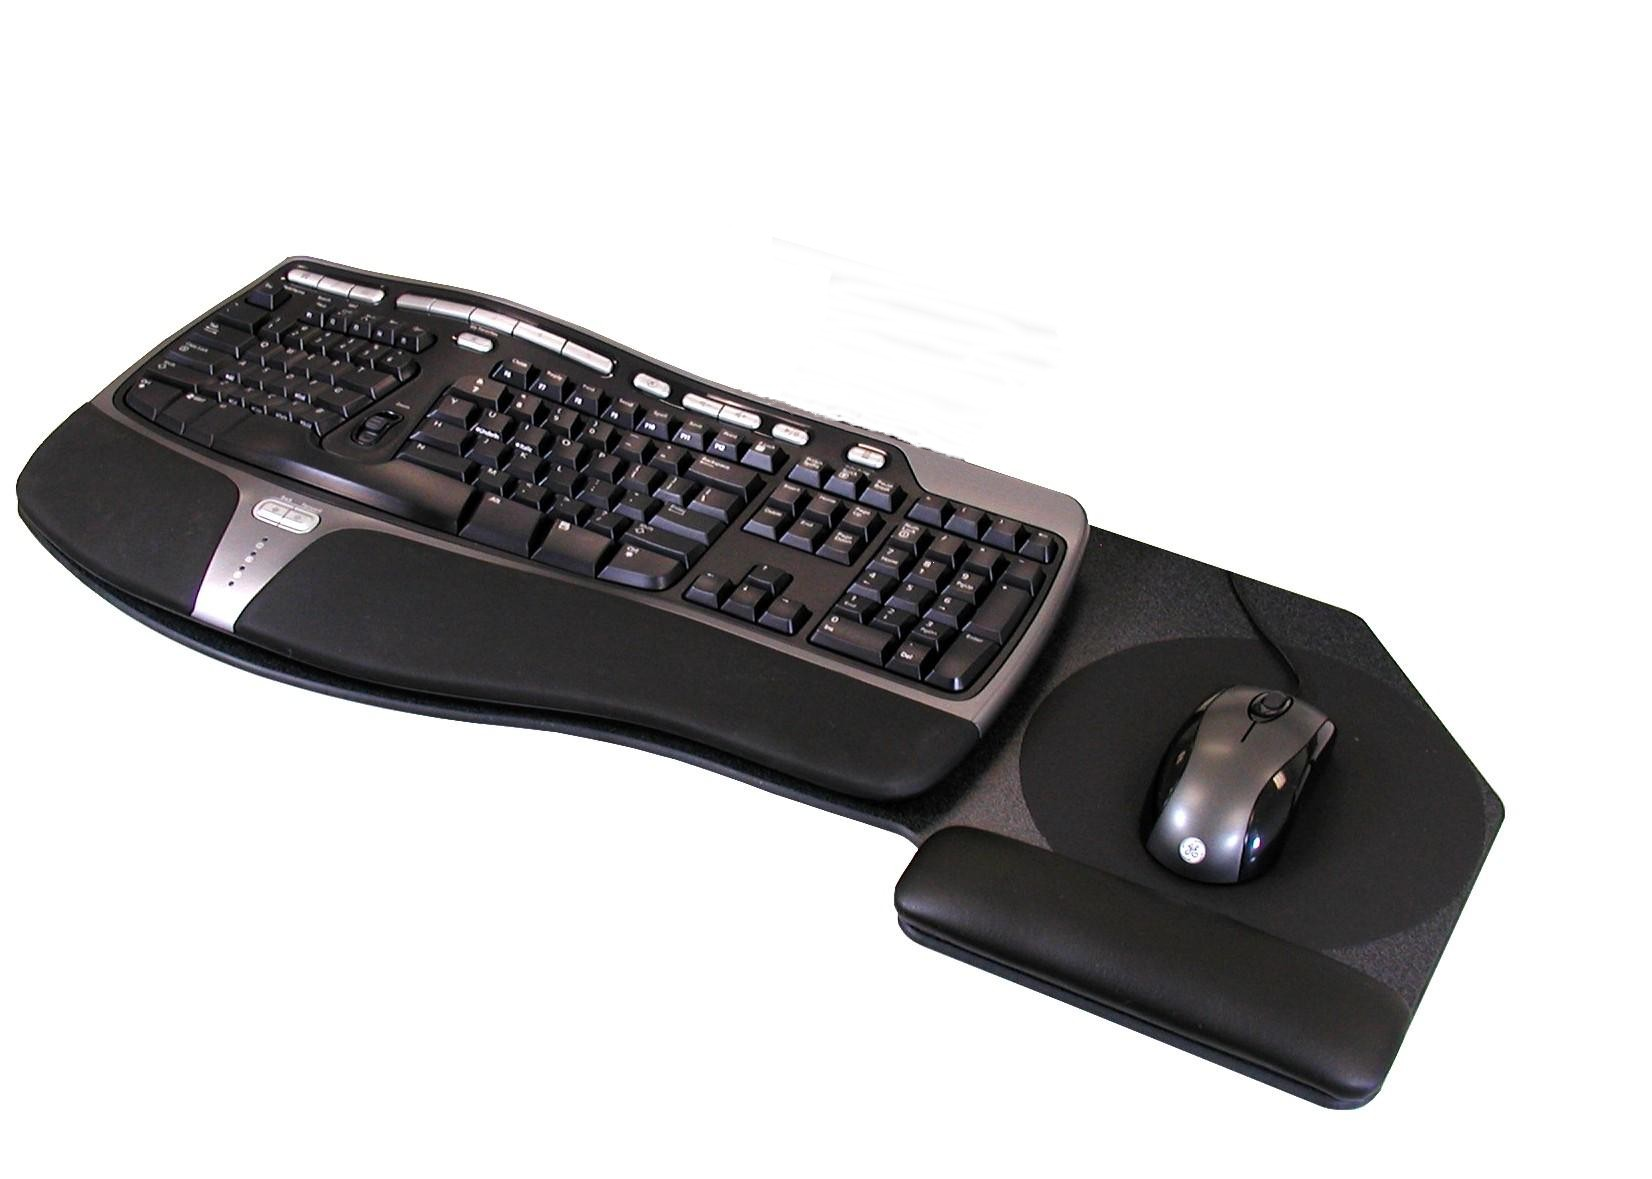 Keyboard Tray #P-29 For Use W/Microsoft Natural Keyboard: